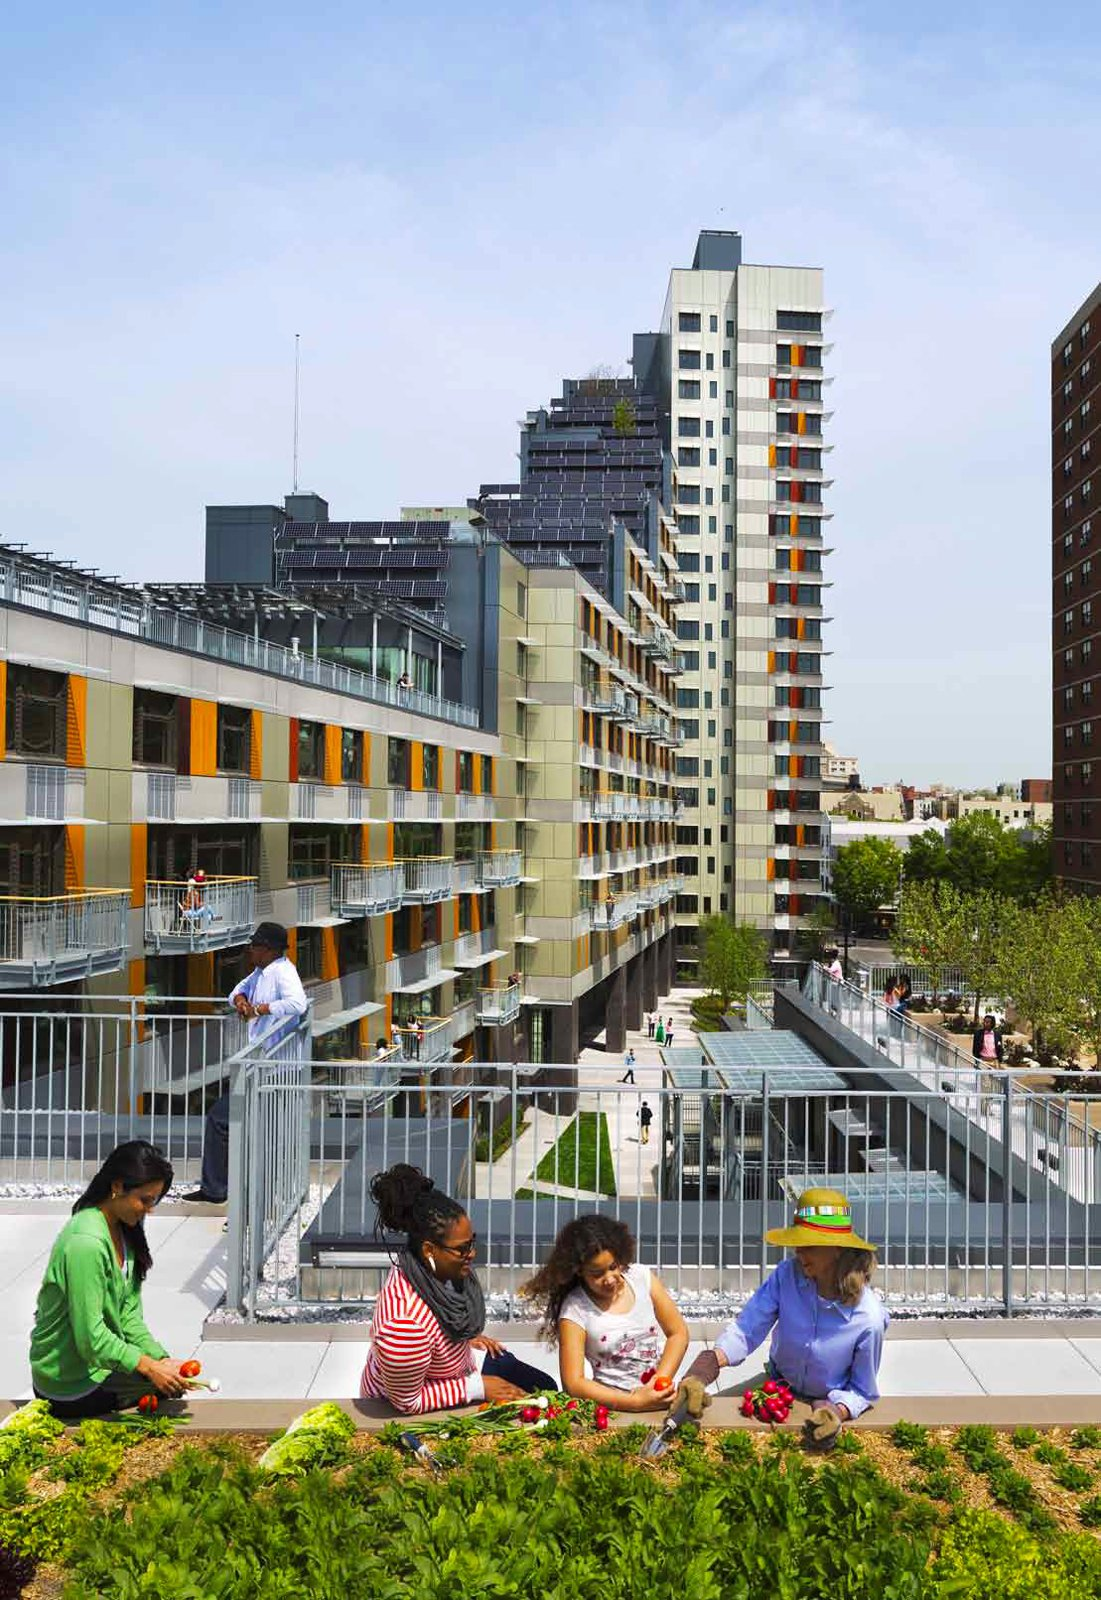 The outdoor space at Via Verde, a sustainable residential development in the South Bronx consists of a ground level courtyard spiraling upwards and completing itself on the top of a building. Incorporating a grove of evergreen trees, apple orchard, and garden plots for vegetables along the way, Lee Weintraub Landscape Architects created an inviting outdoor space for the building residents' to enjoy daily. Photo courtesy of Lee Weintraub Landscape Architecture.  New York Landscape Architects Design Awards by Sara Carpenter